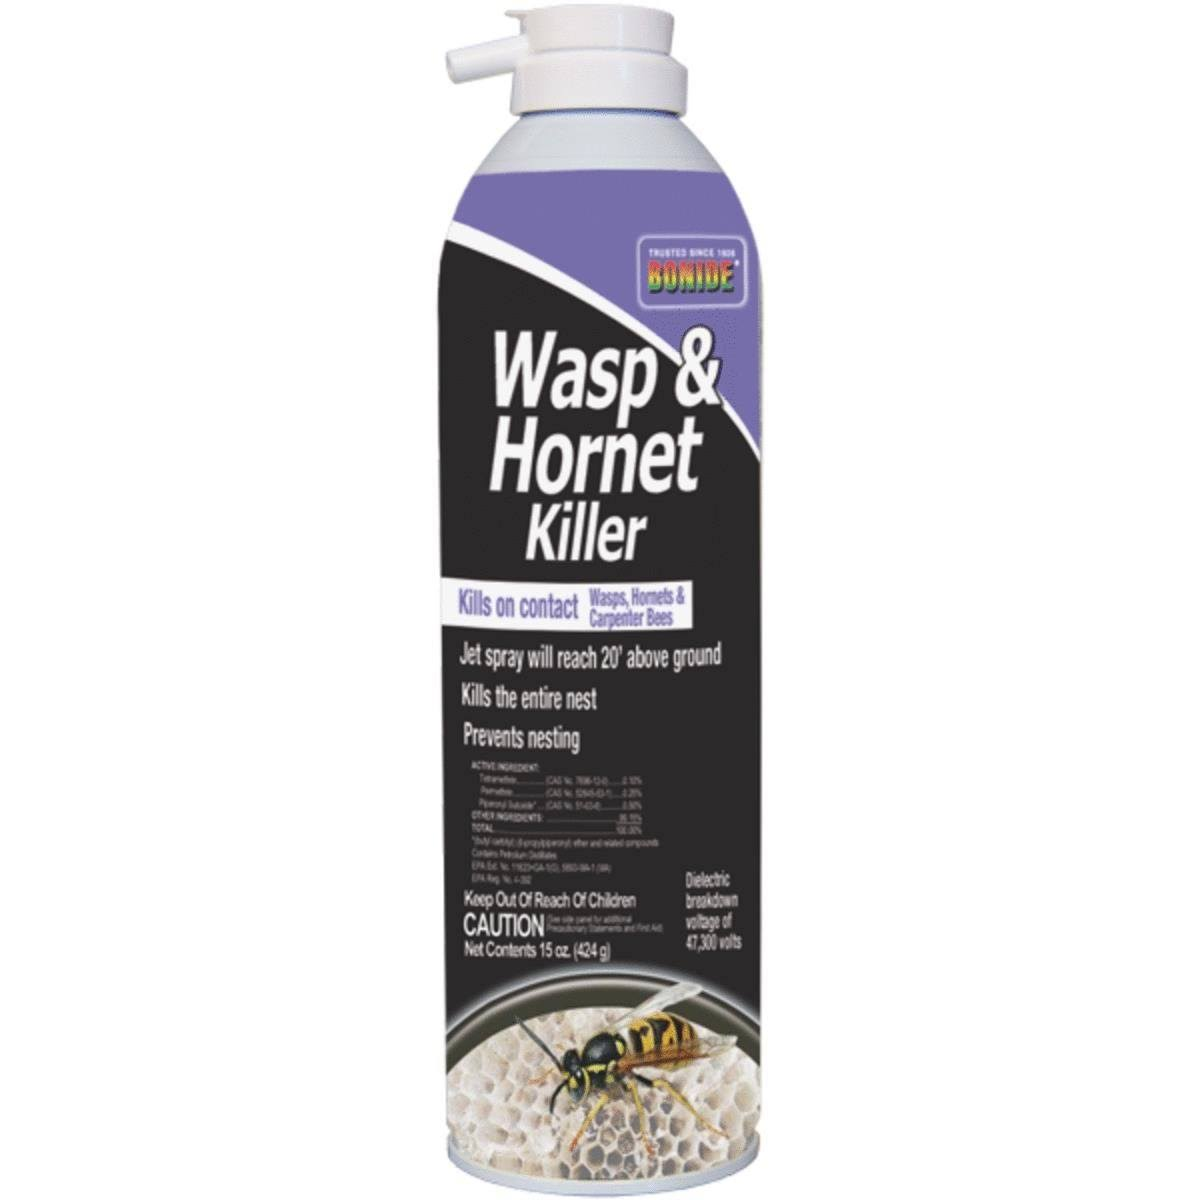 Bonide Wasp and Hornet Insect Killer Spray - 15oz